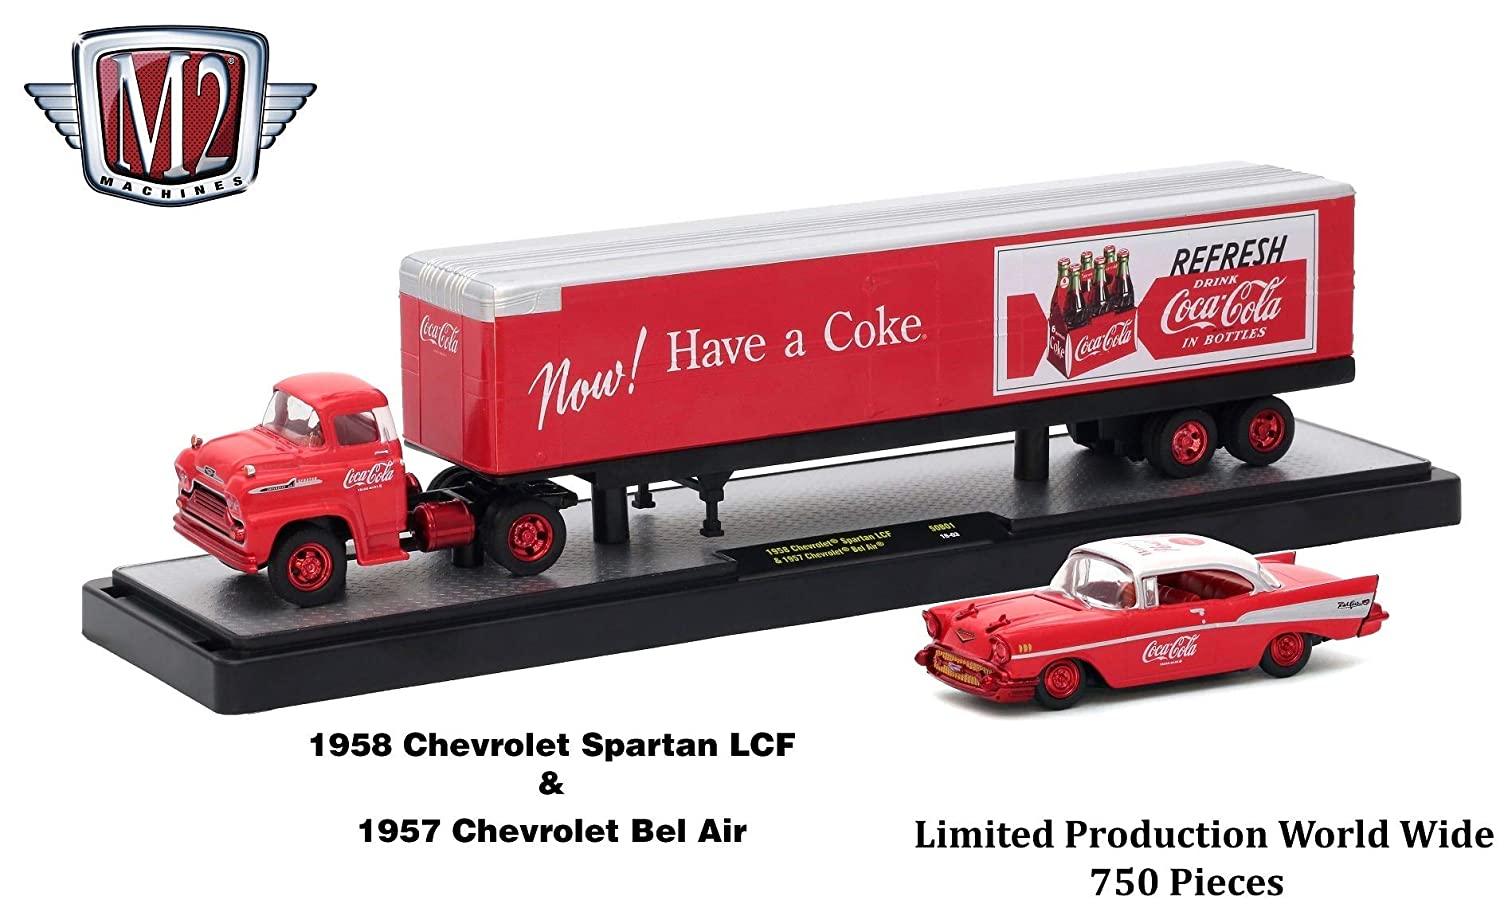 M2 Machines Limited Edition Chase Vehicle Set 1958 Chevrolet Spartan LCF /& 1957 Chevrolet Bel Air Auto-Haulers 2018 Coca-Cola Release 1 Castline 1:64 Scale Die-Cast Vehicle Set 1 of only 750